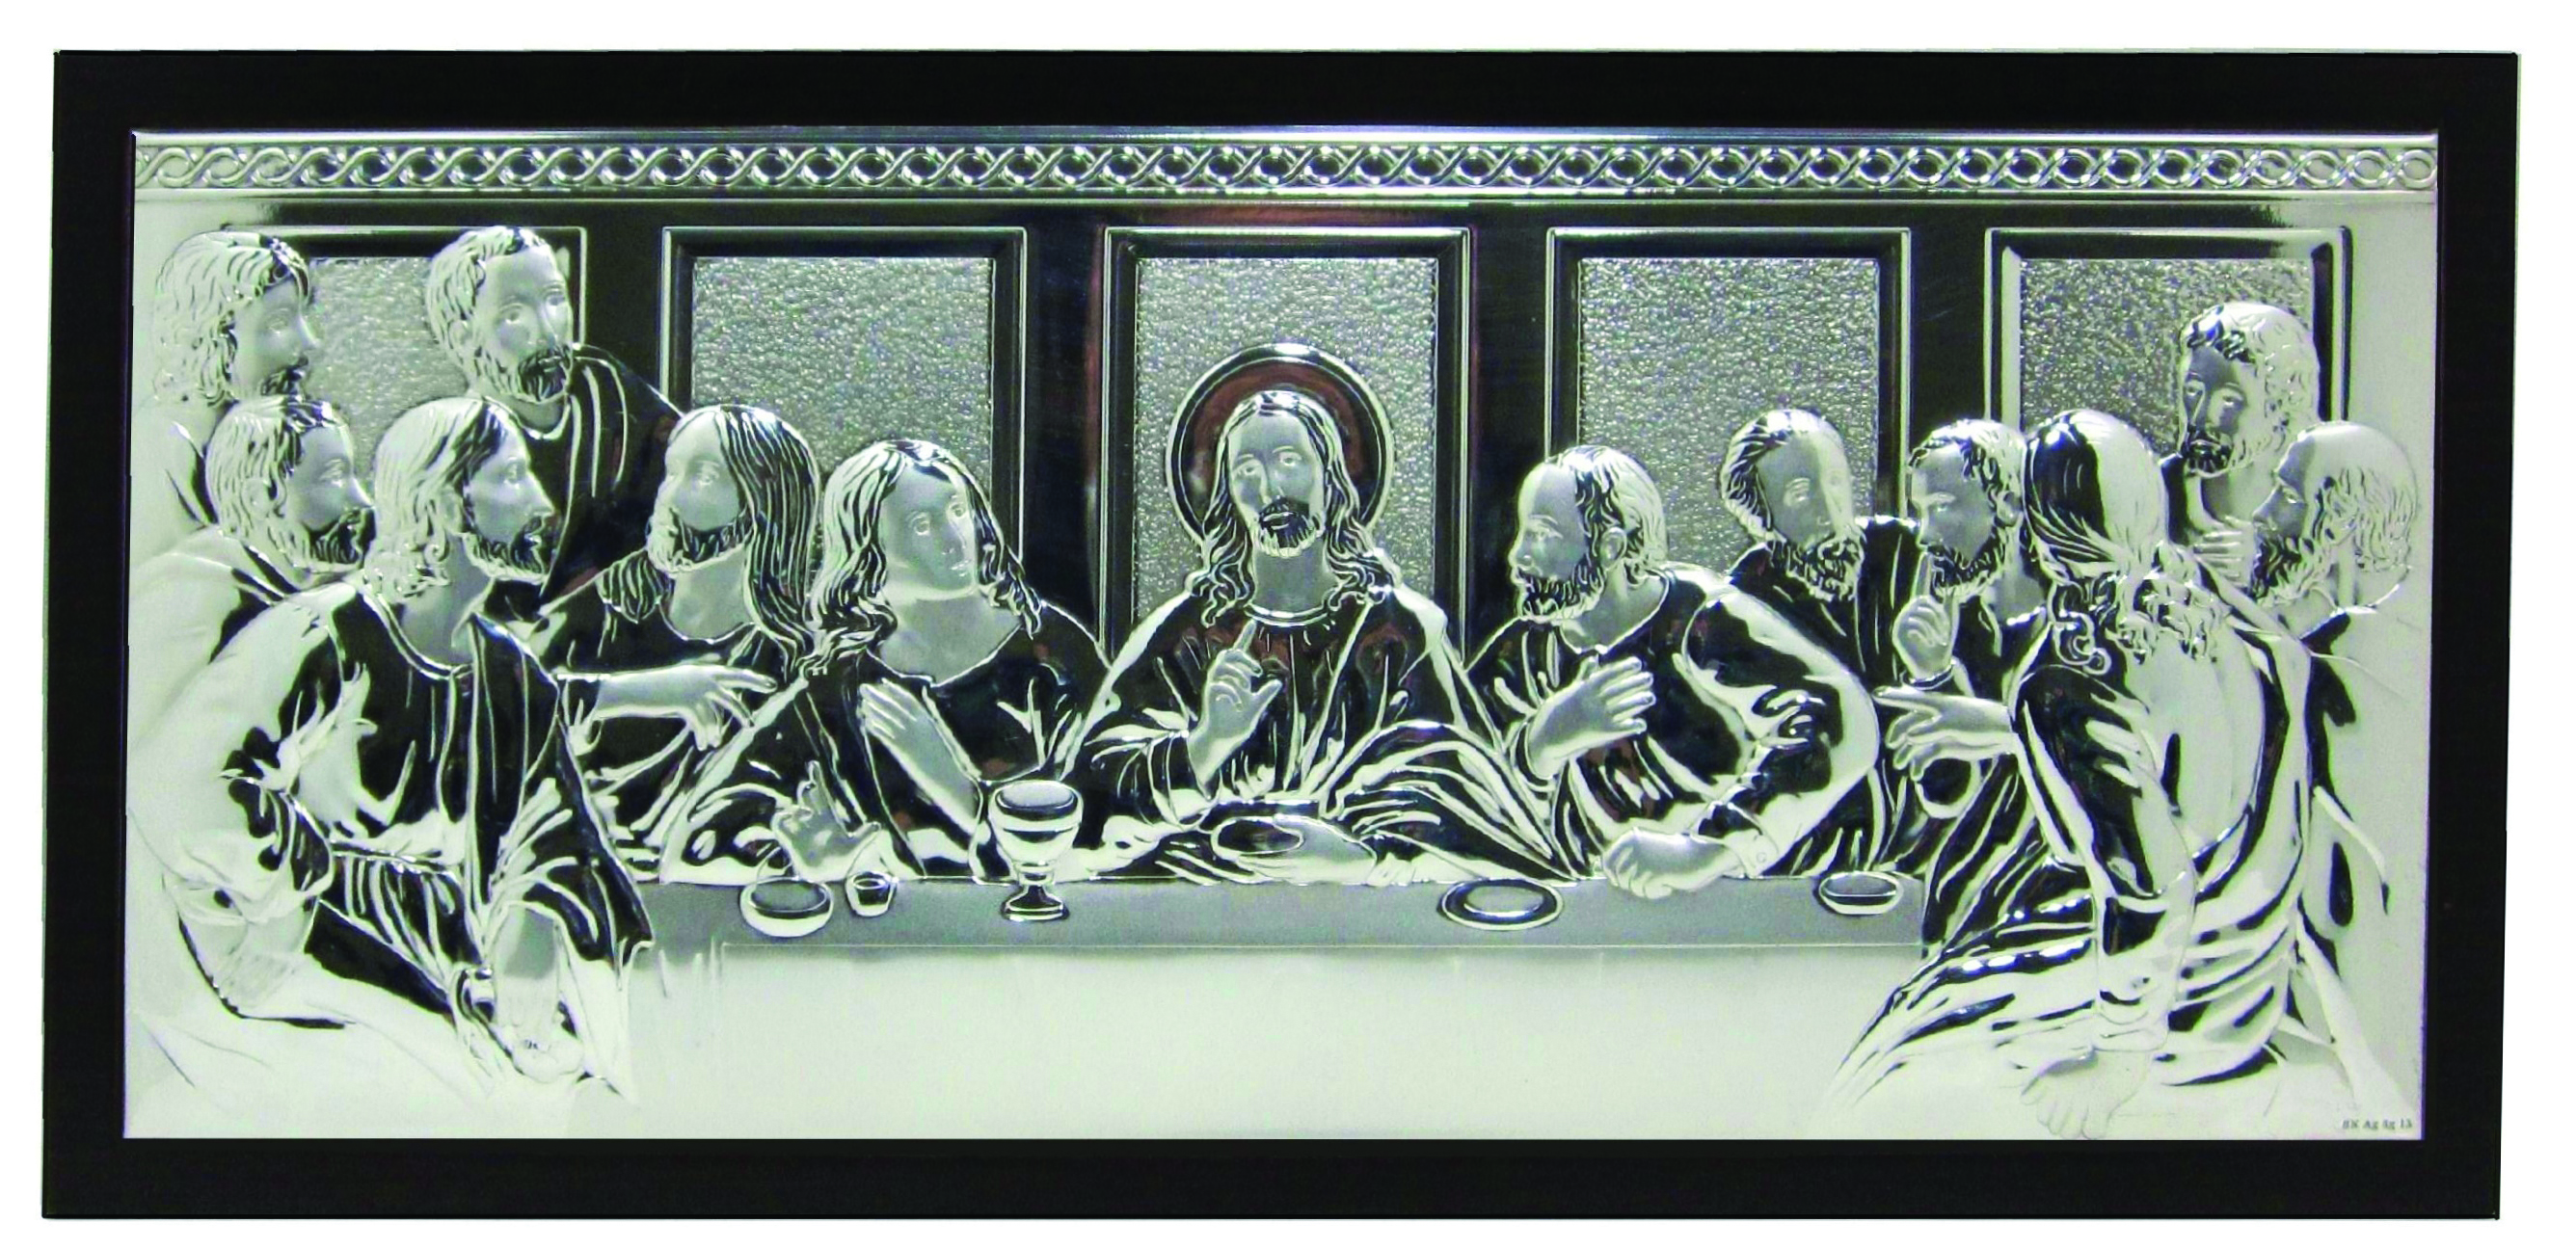 0029_35 Silver religious image.jpg